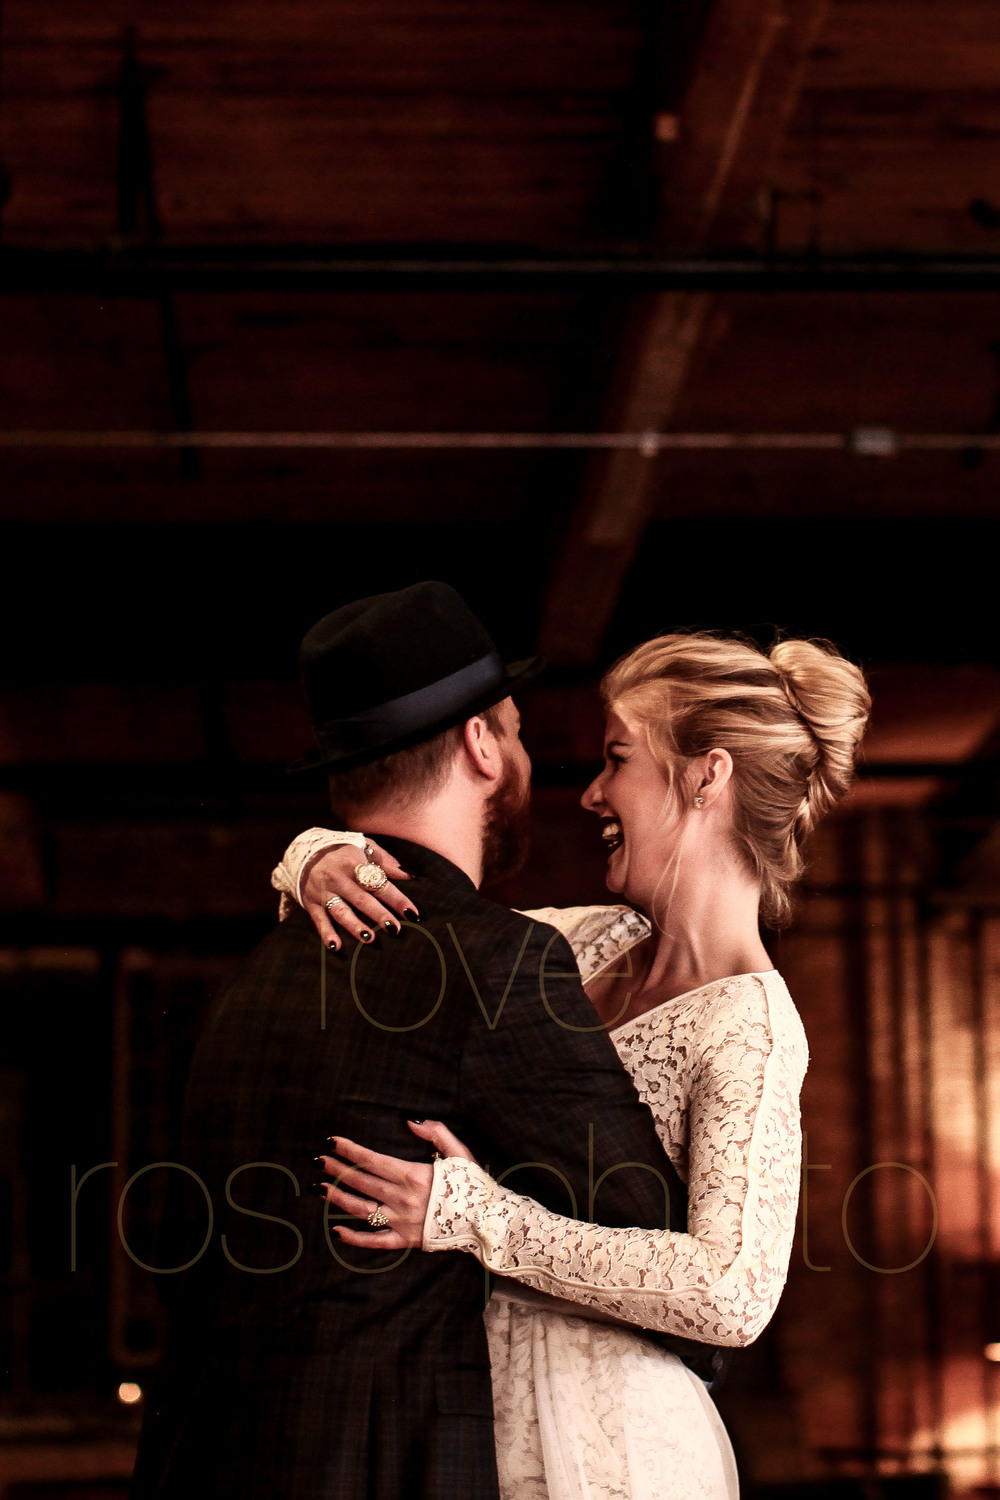 West Fulton Chicago Wedding Venue Salvage One photography enagement photos bride groom first dance-31.jpg